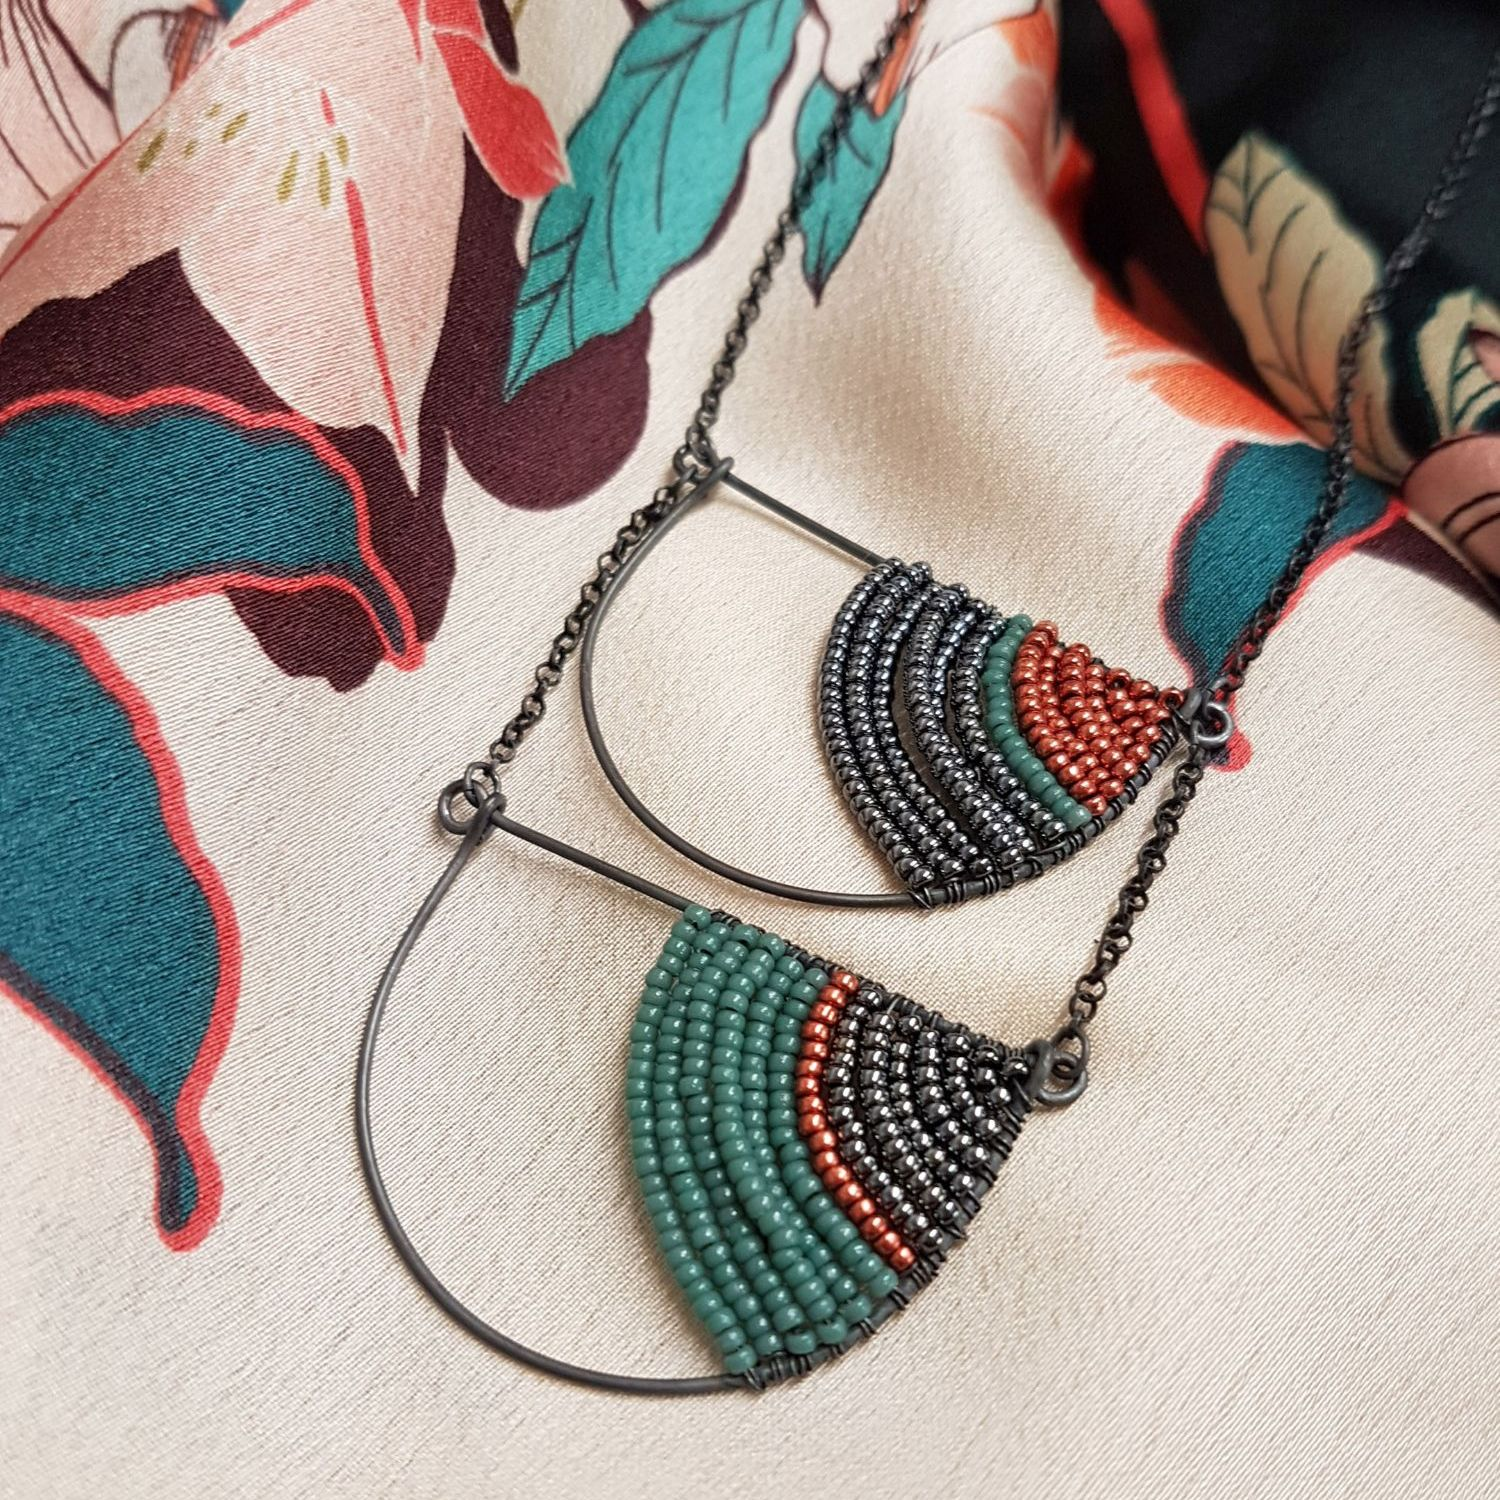 Bespoke jewellery Inspired by your clothes